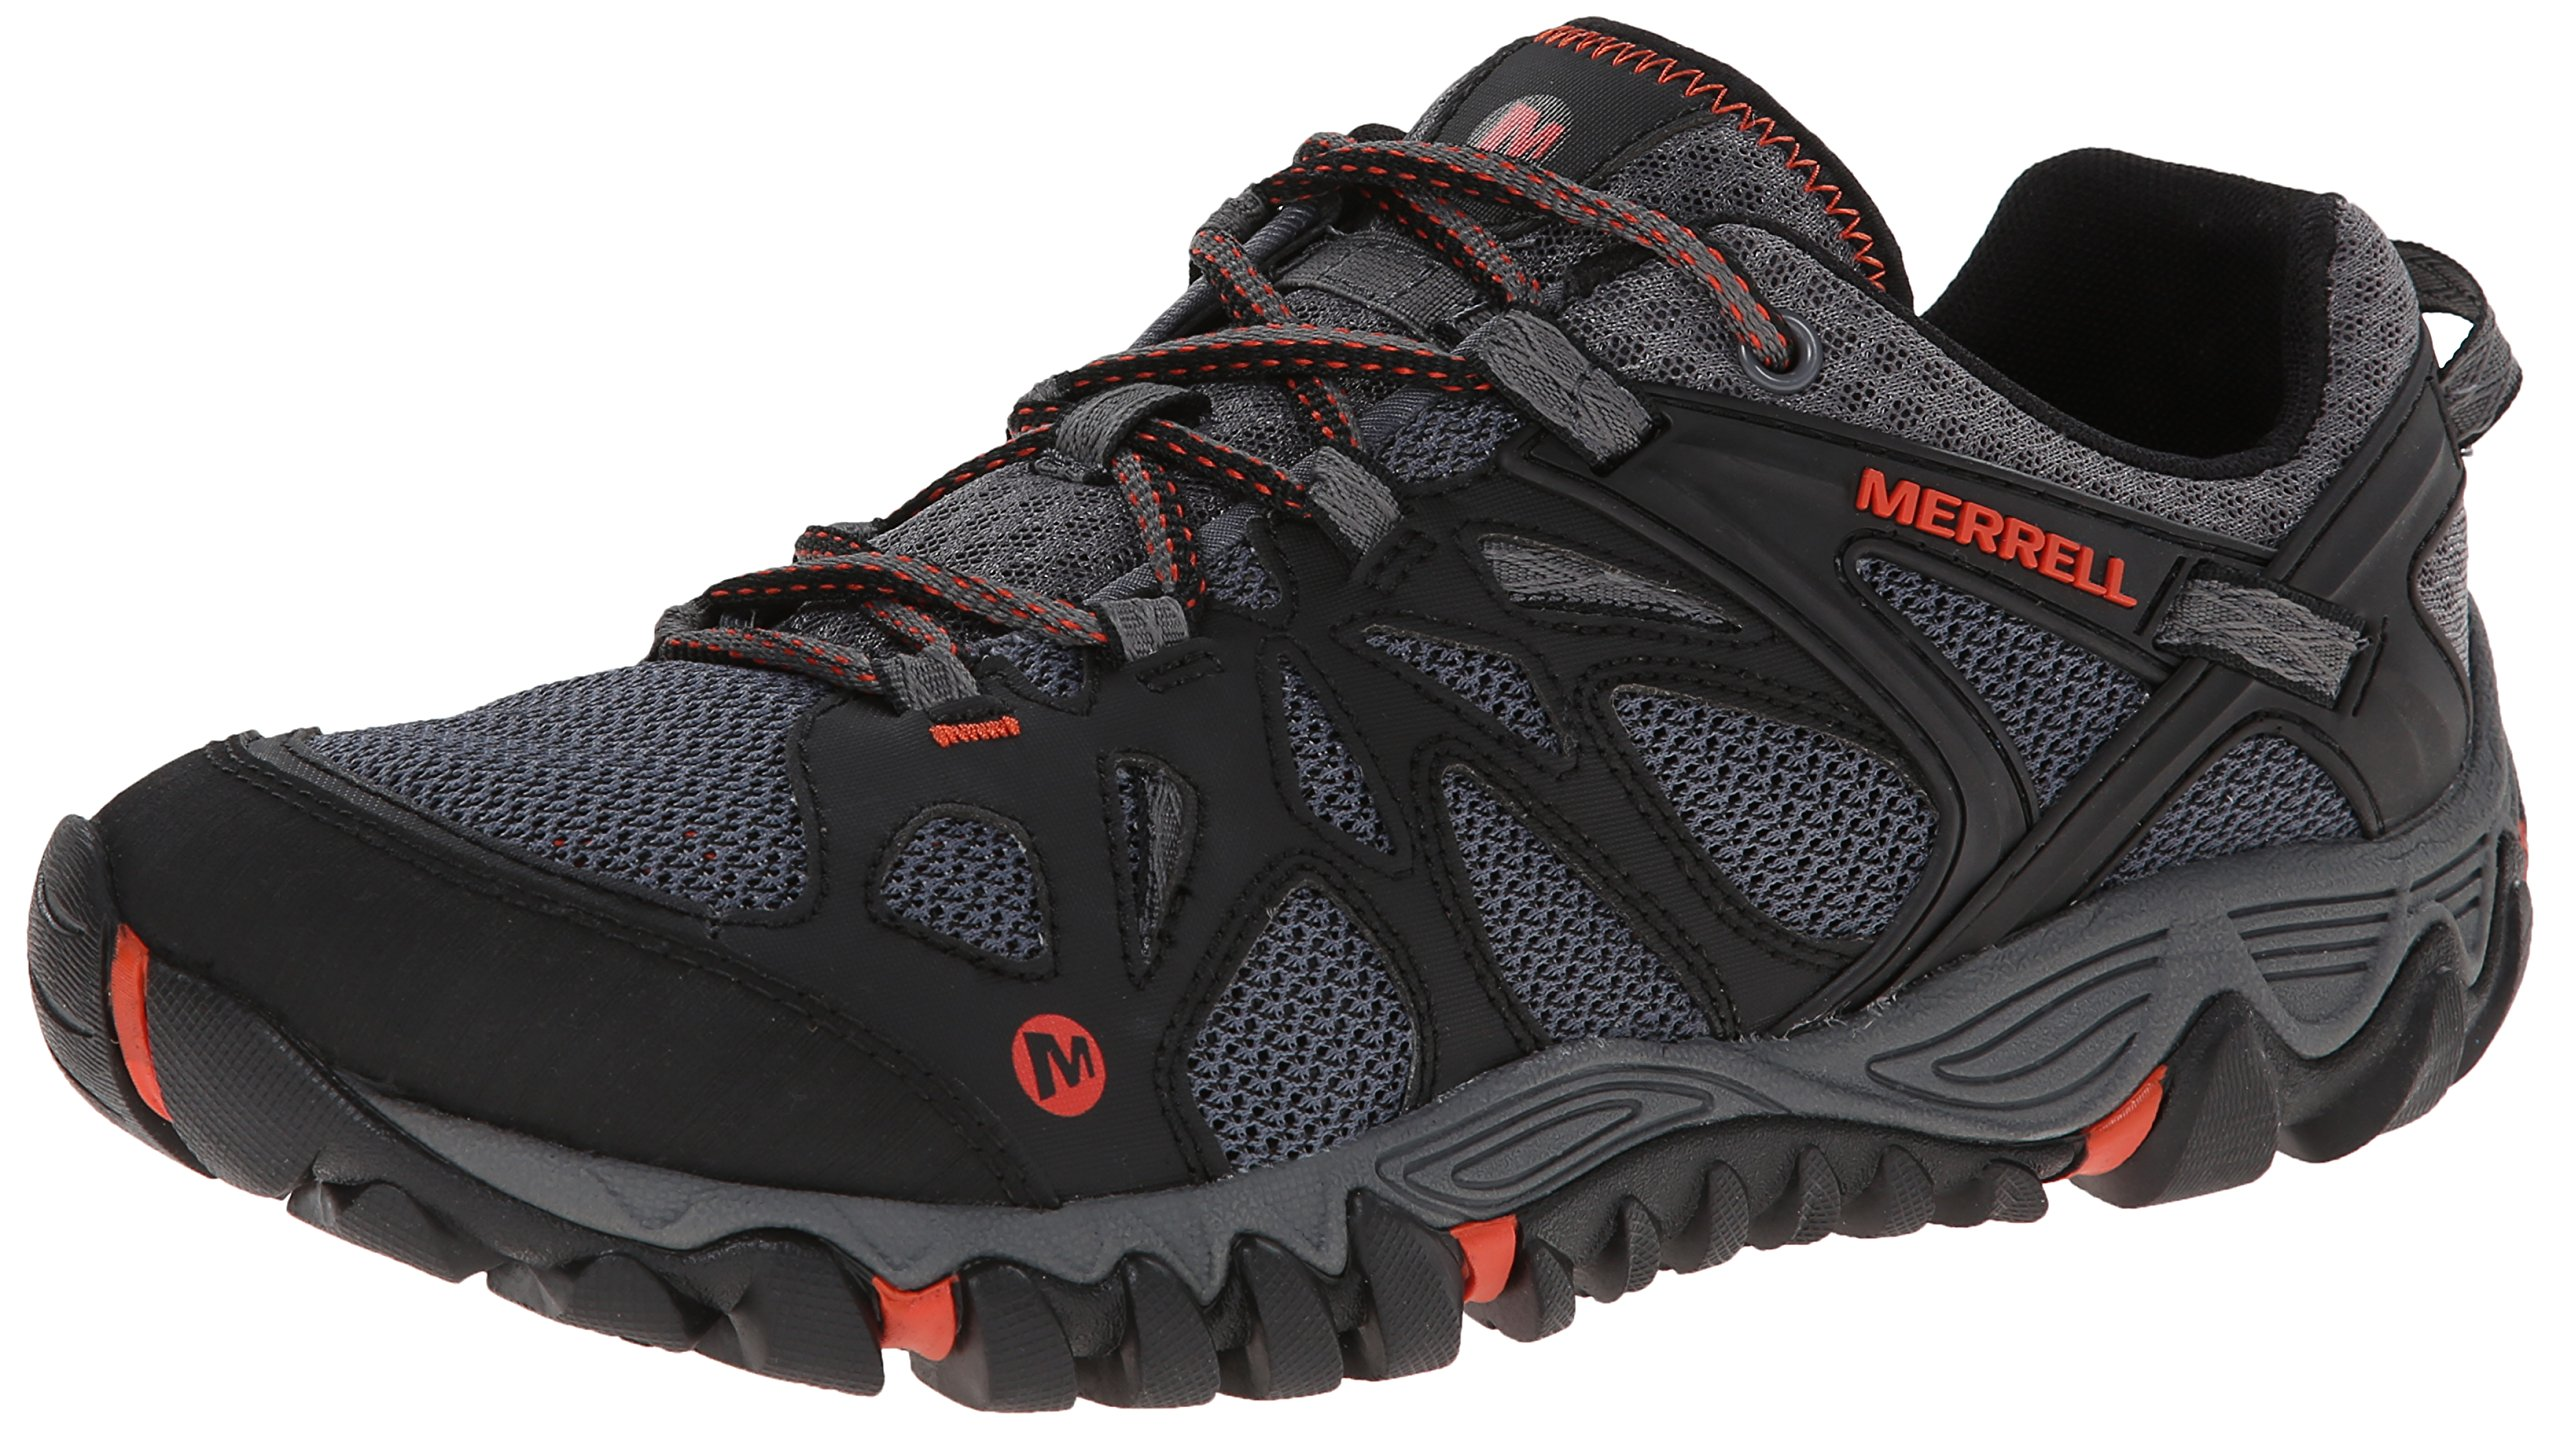 Merrell Men's All Out Blaze Aero Sport Hiking Water Shoe, Black/Red, 13 M US